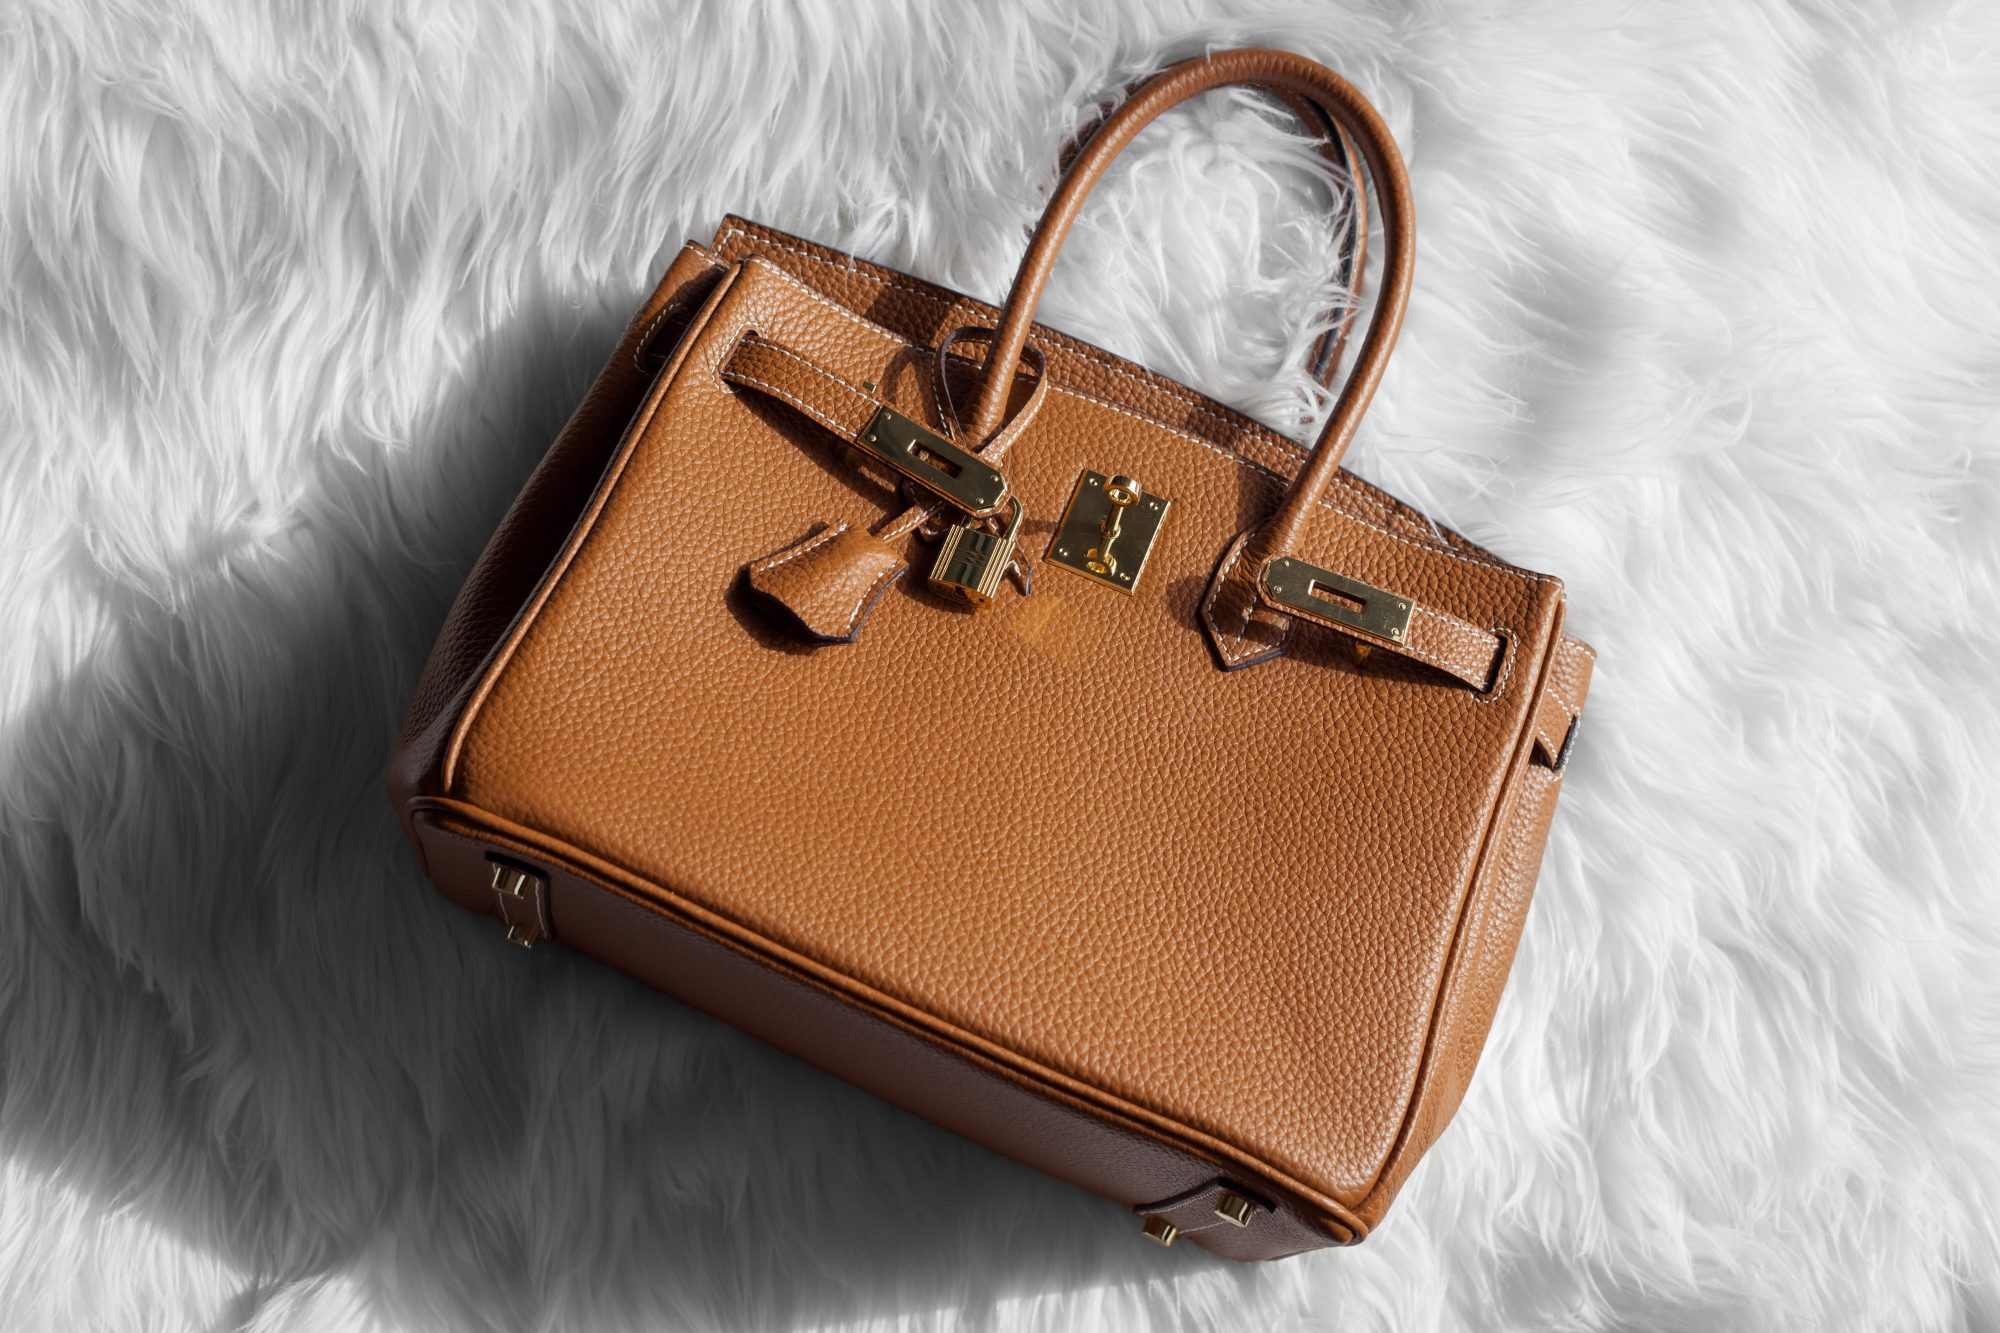 cf95bd4886e4 This tan bag is a gorgeous designer dupe of the Hermés Birkin.